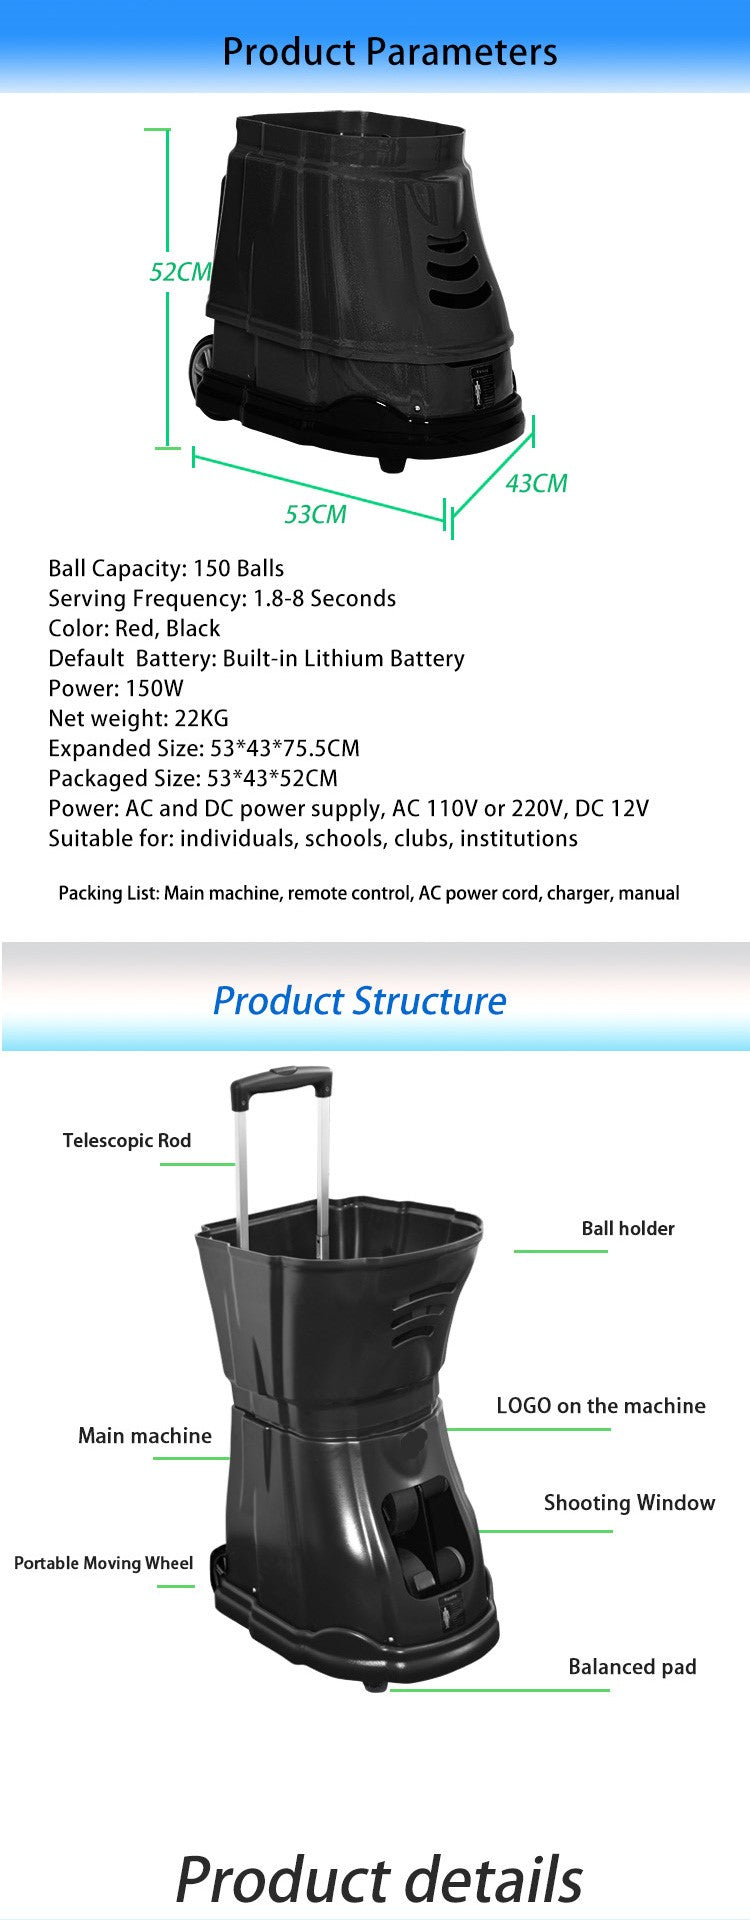 Lawn Tennis Training Ball Throwing Machine : Product Parameters